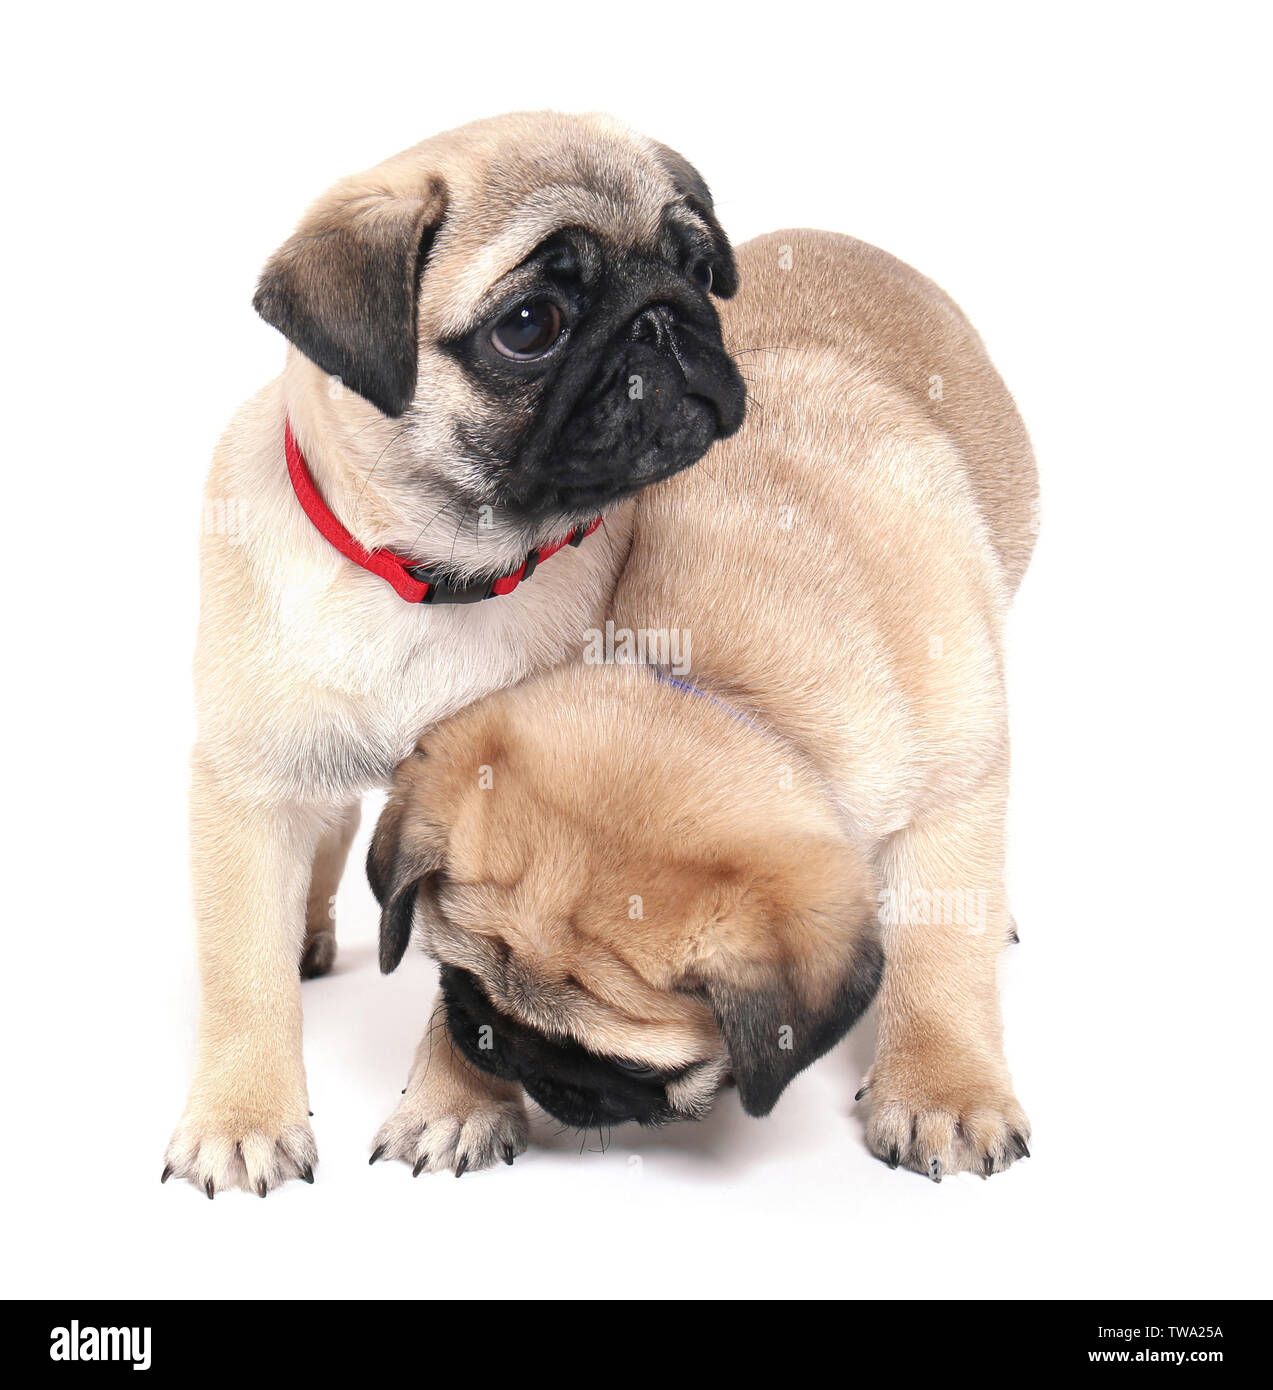 Cute Pug Puppies On White Background Stock Photo Alamy